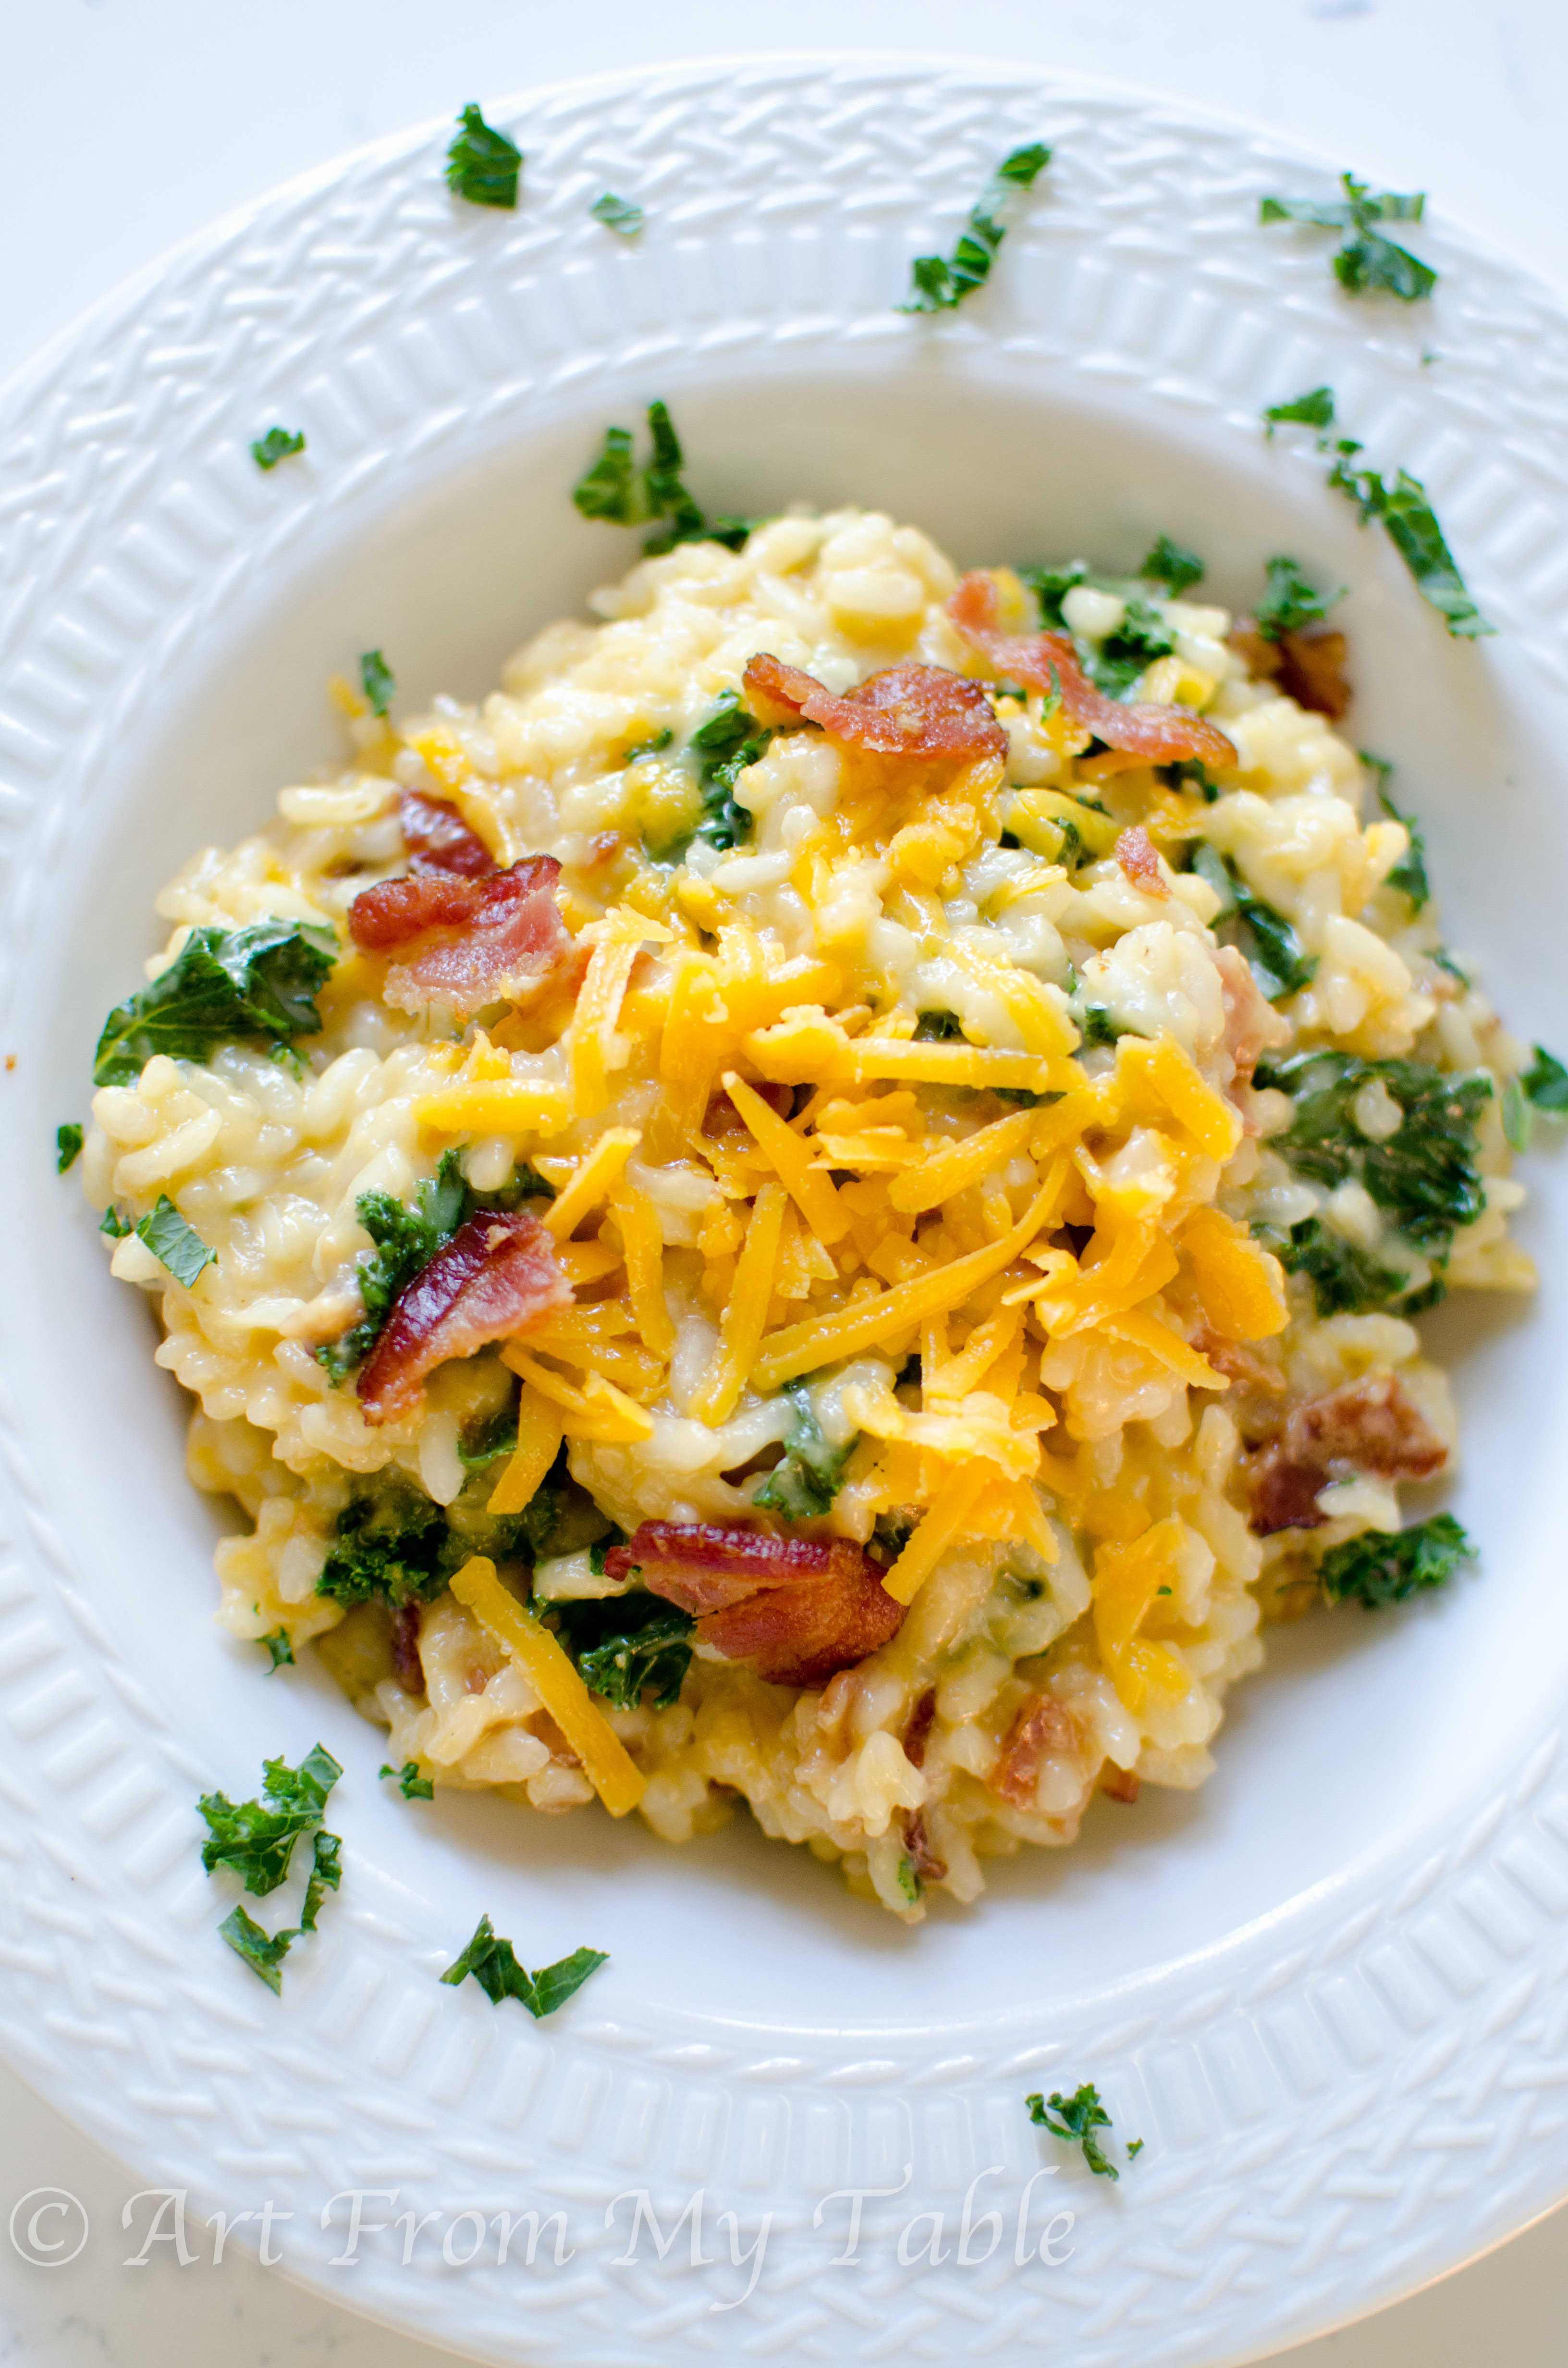 Risotto with cheddar, bacon, and greens - Art From My Table